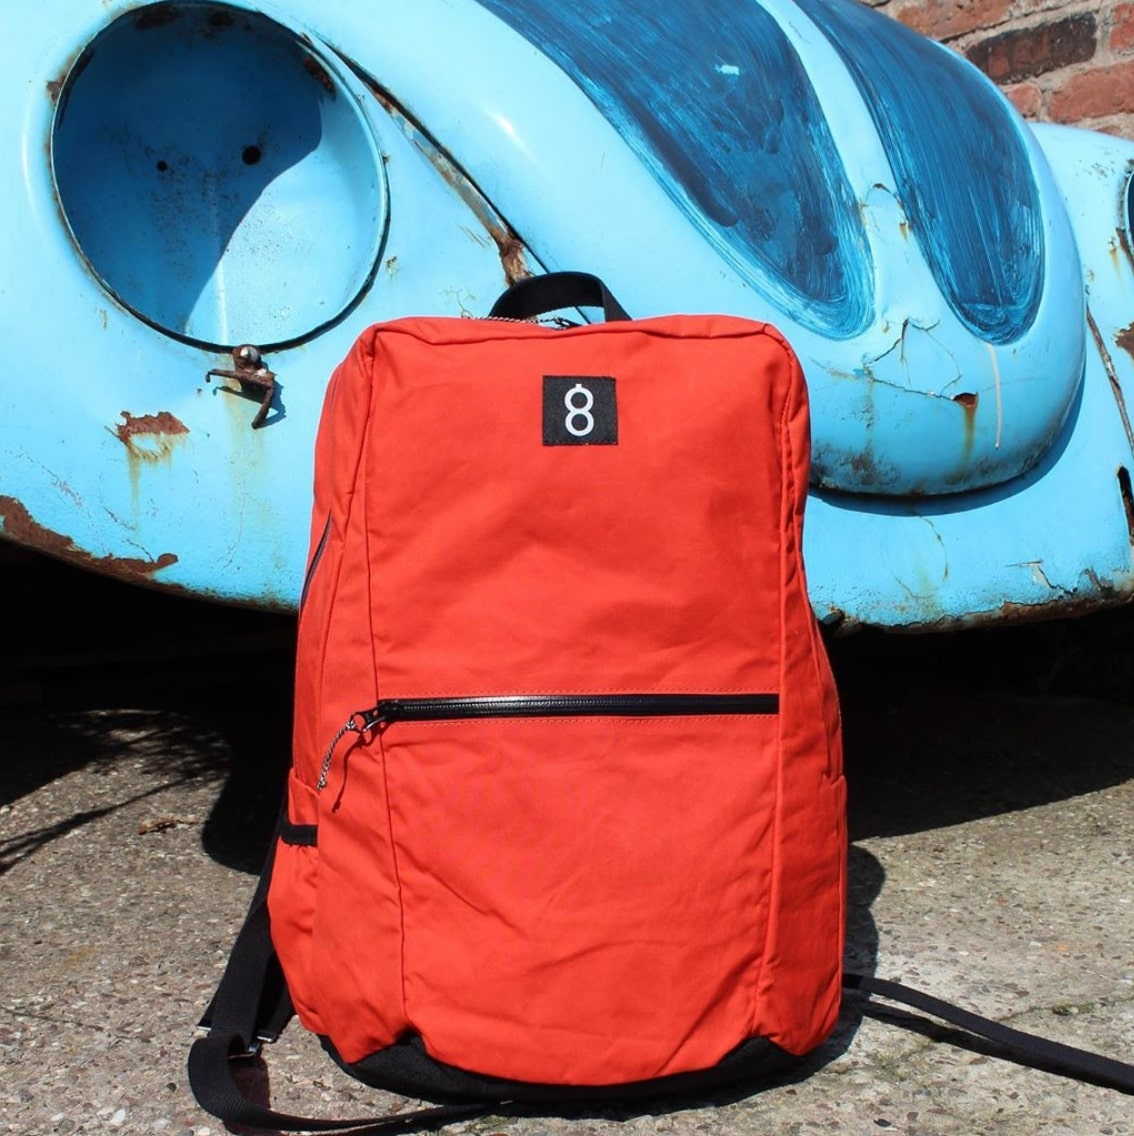 Both Barrels Rucksack on YouK